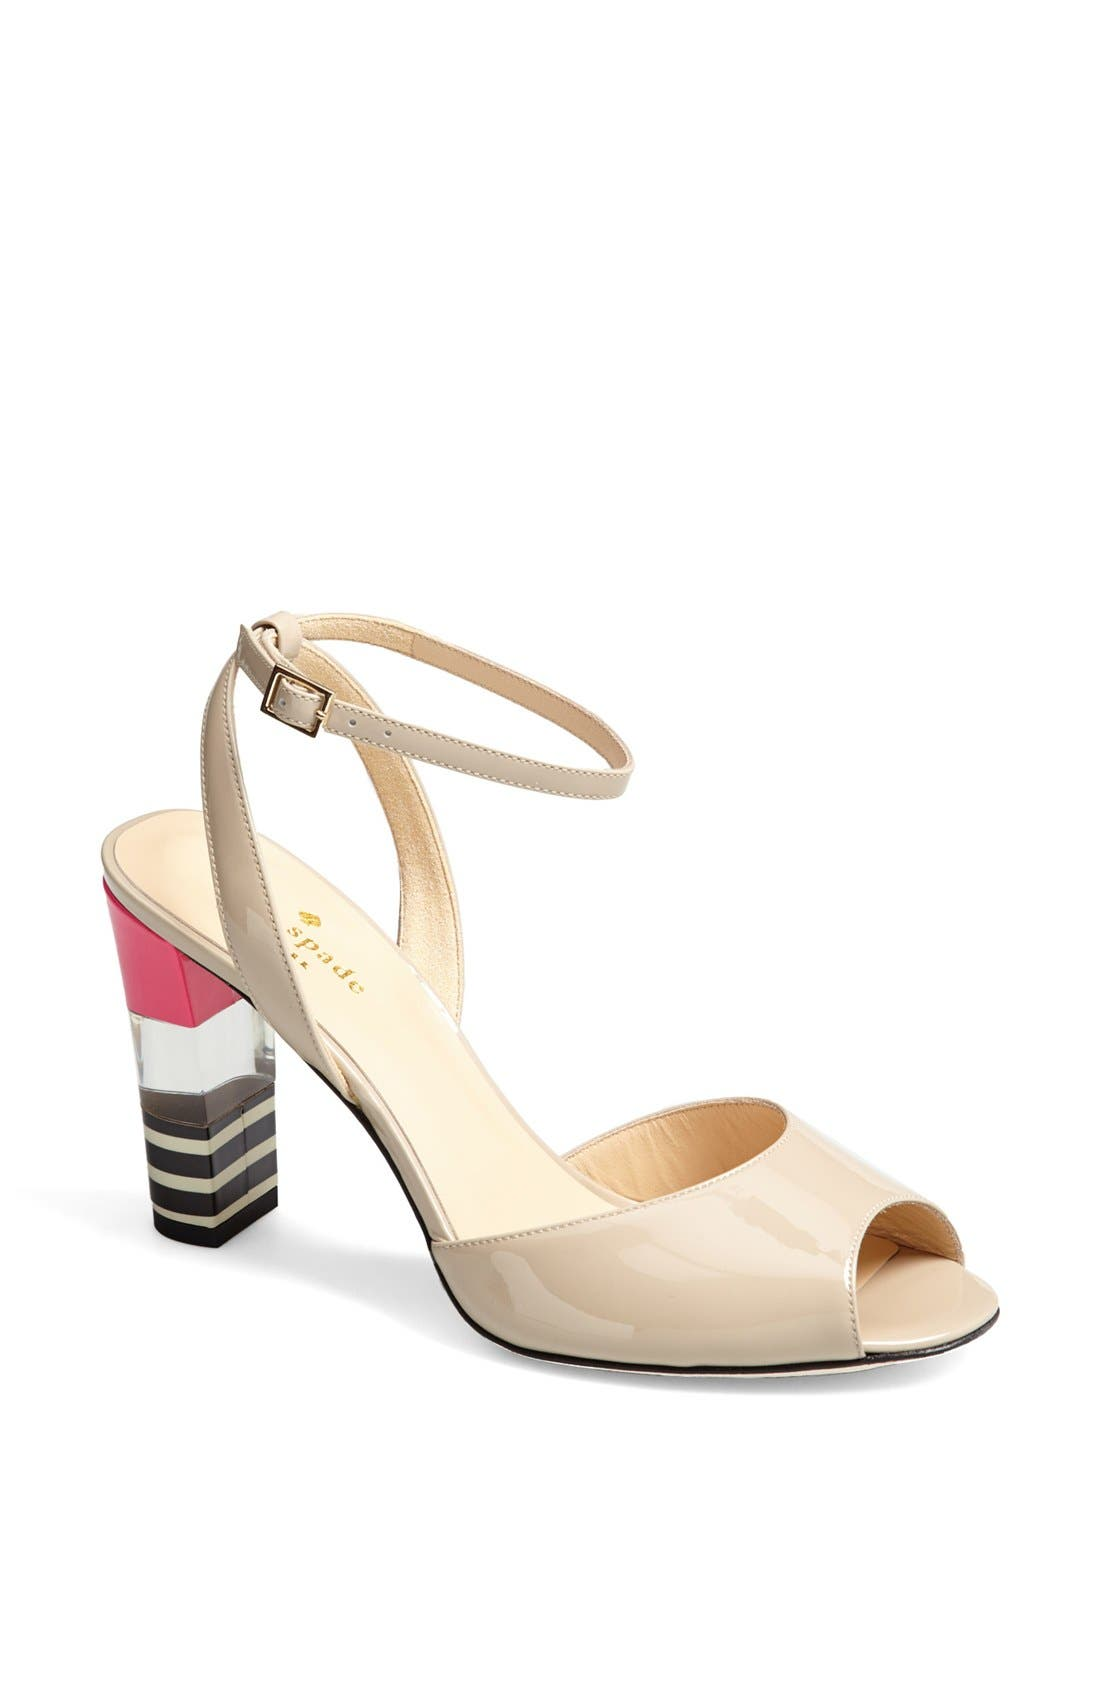 Alternate Image 1 Selected - kate spade new york 'ice' leather sandal